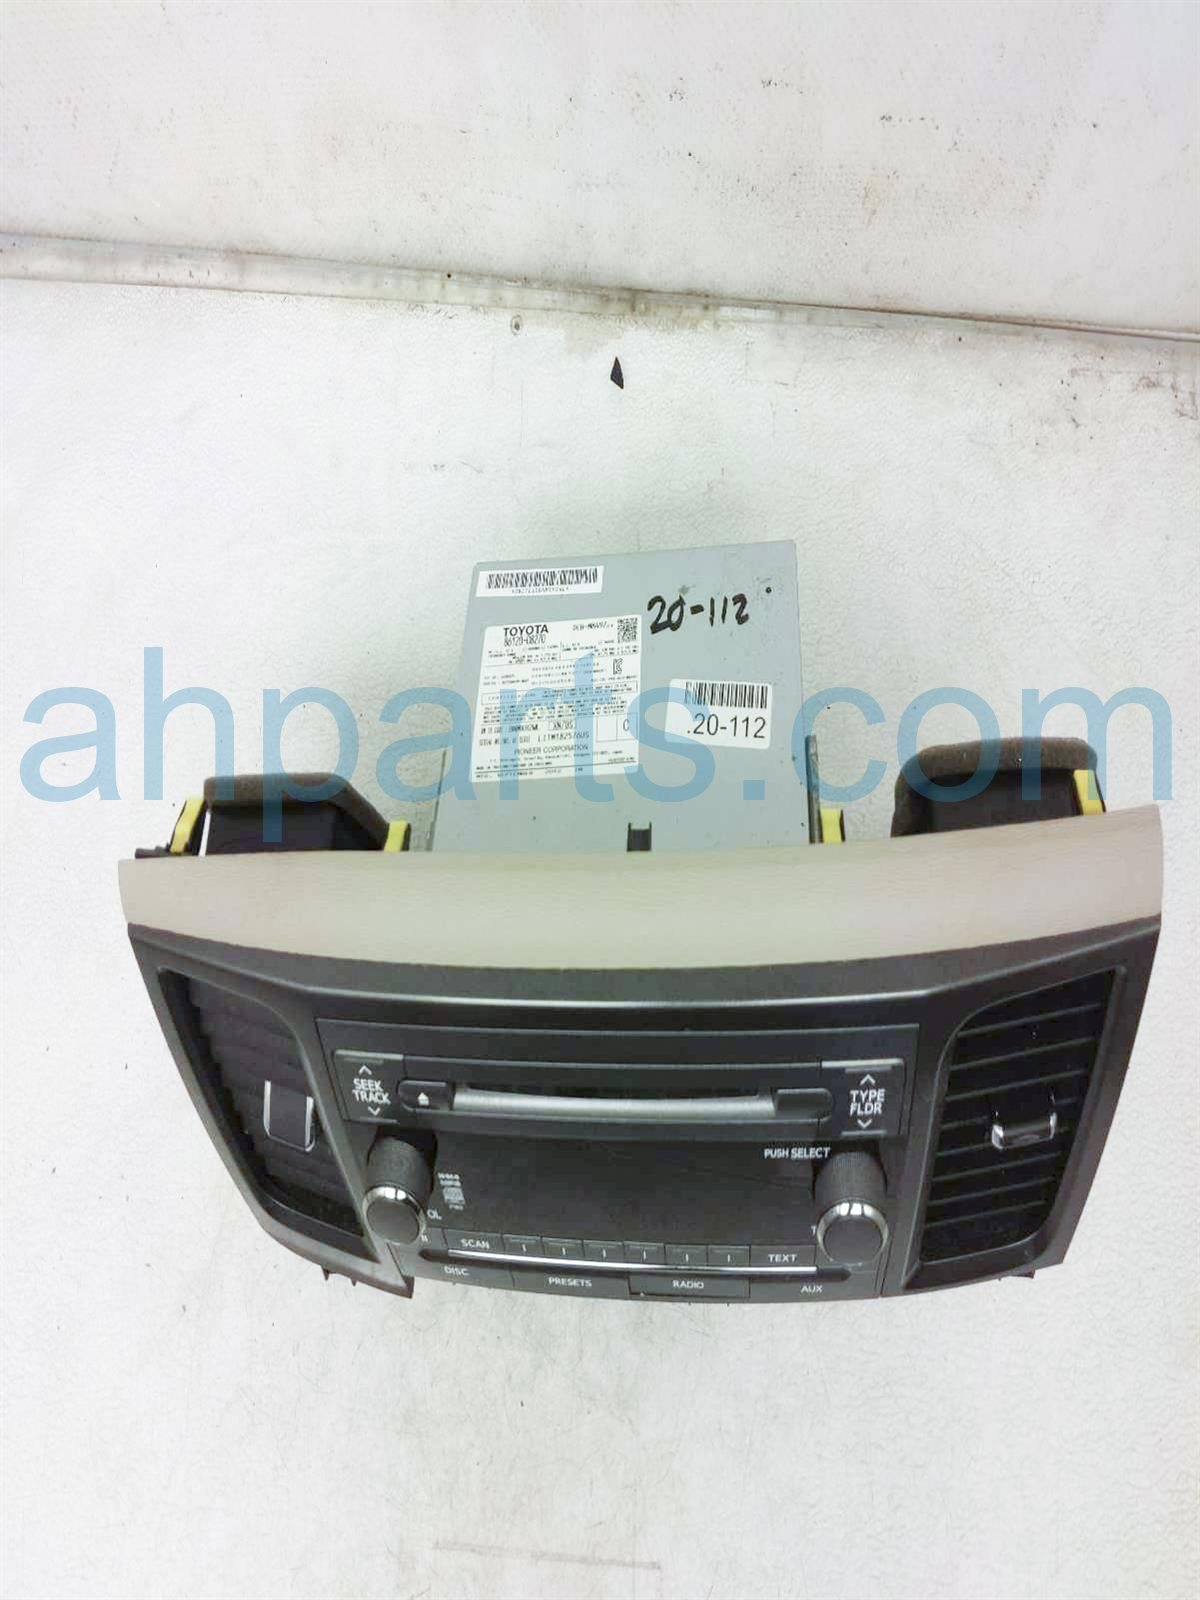 2013 Toyota Sienna Am/fm/6 Disc Cd & Radio Unit Assy 86120 08270 Replacement